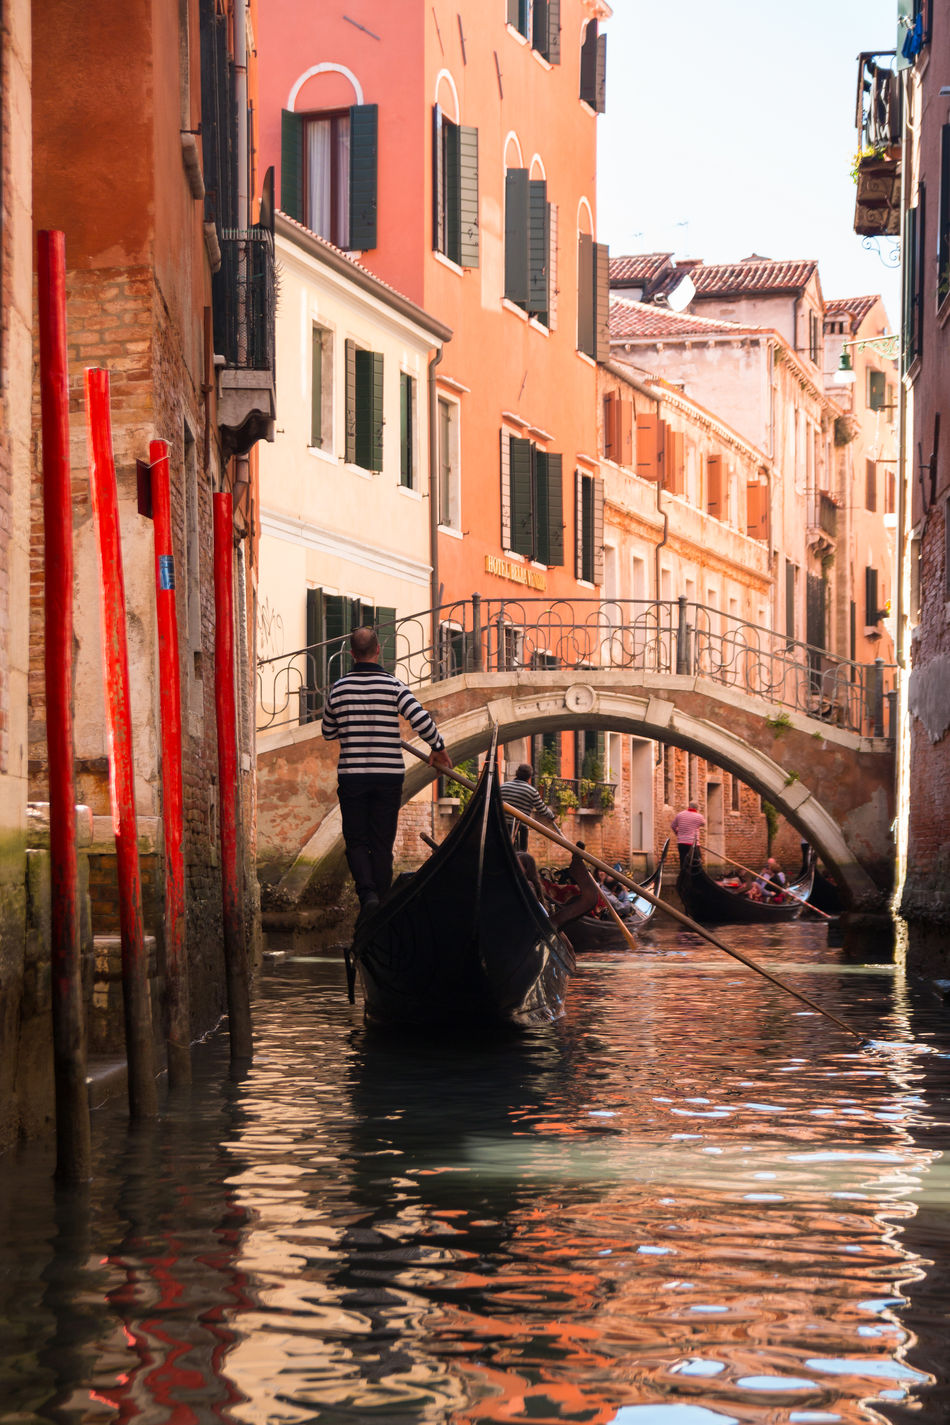 Architecture Building Exterior Built Structure Canal Day Gondola Gondola - Traditional Boat Gondolier Italy Moored Nautical Vessel No People Outdoors Transportation Venice, Italy Water Waterfront